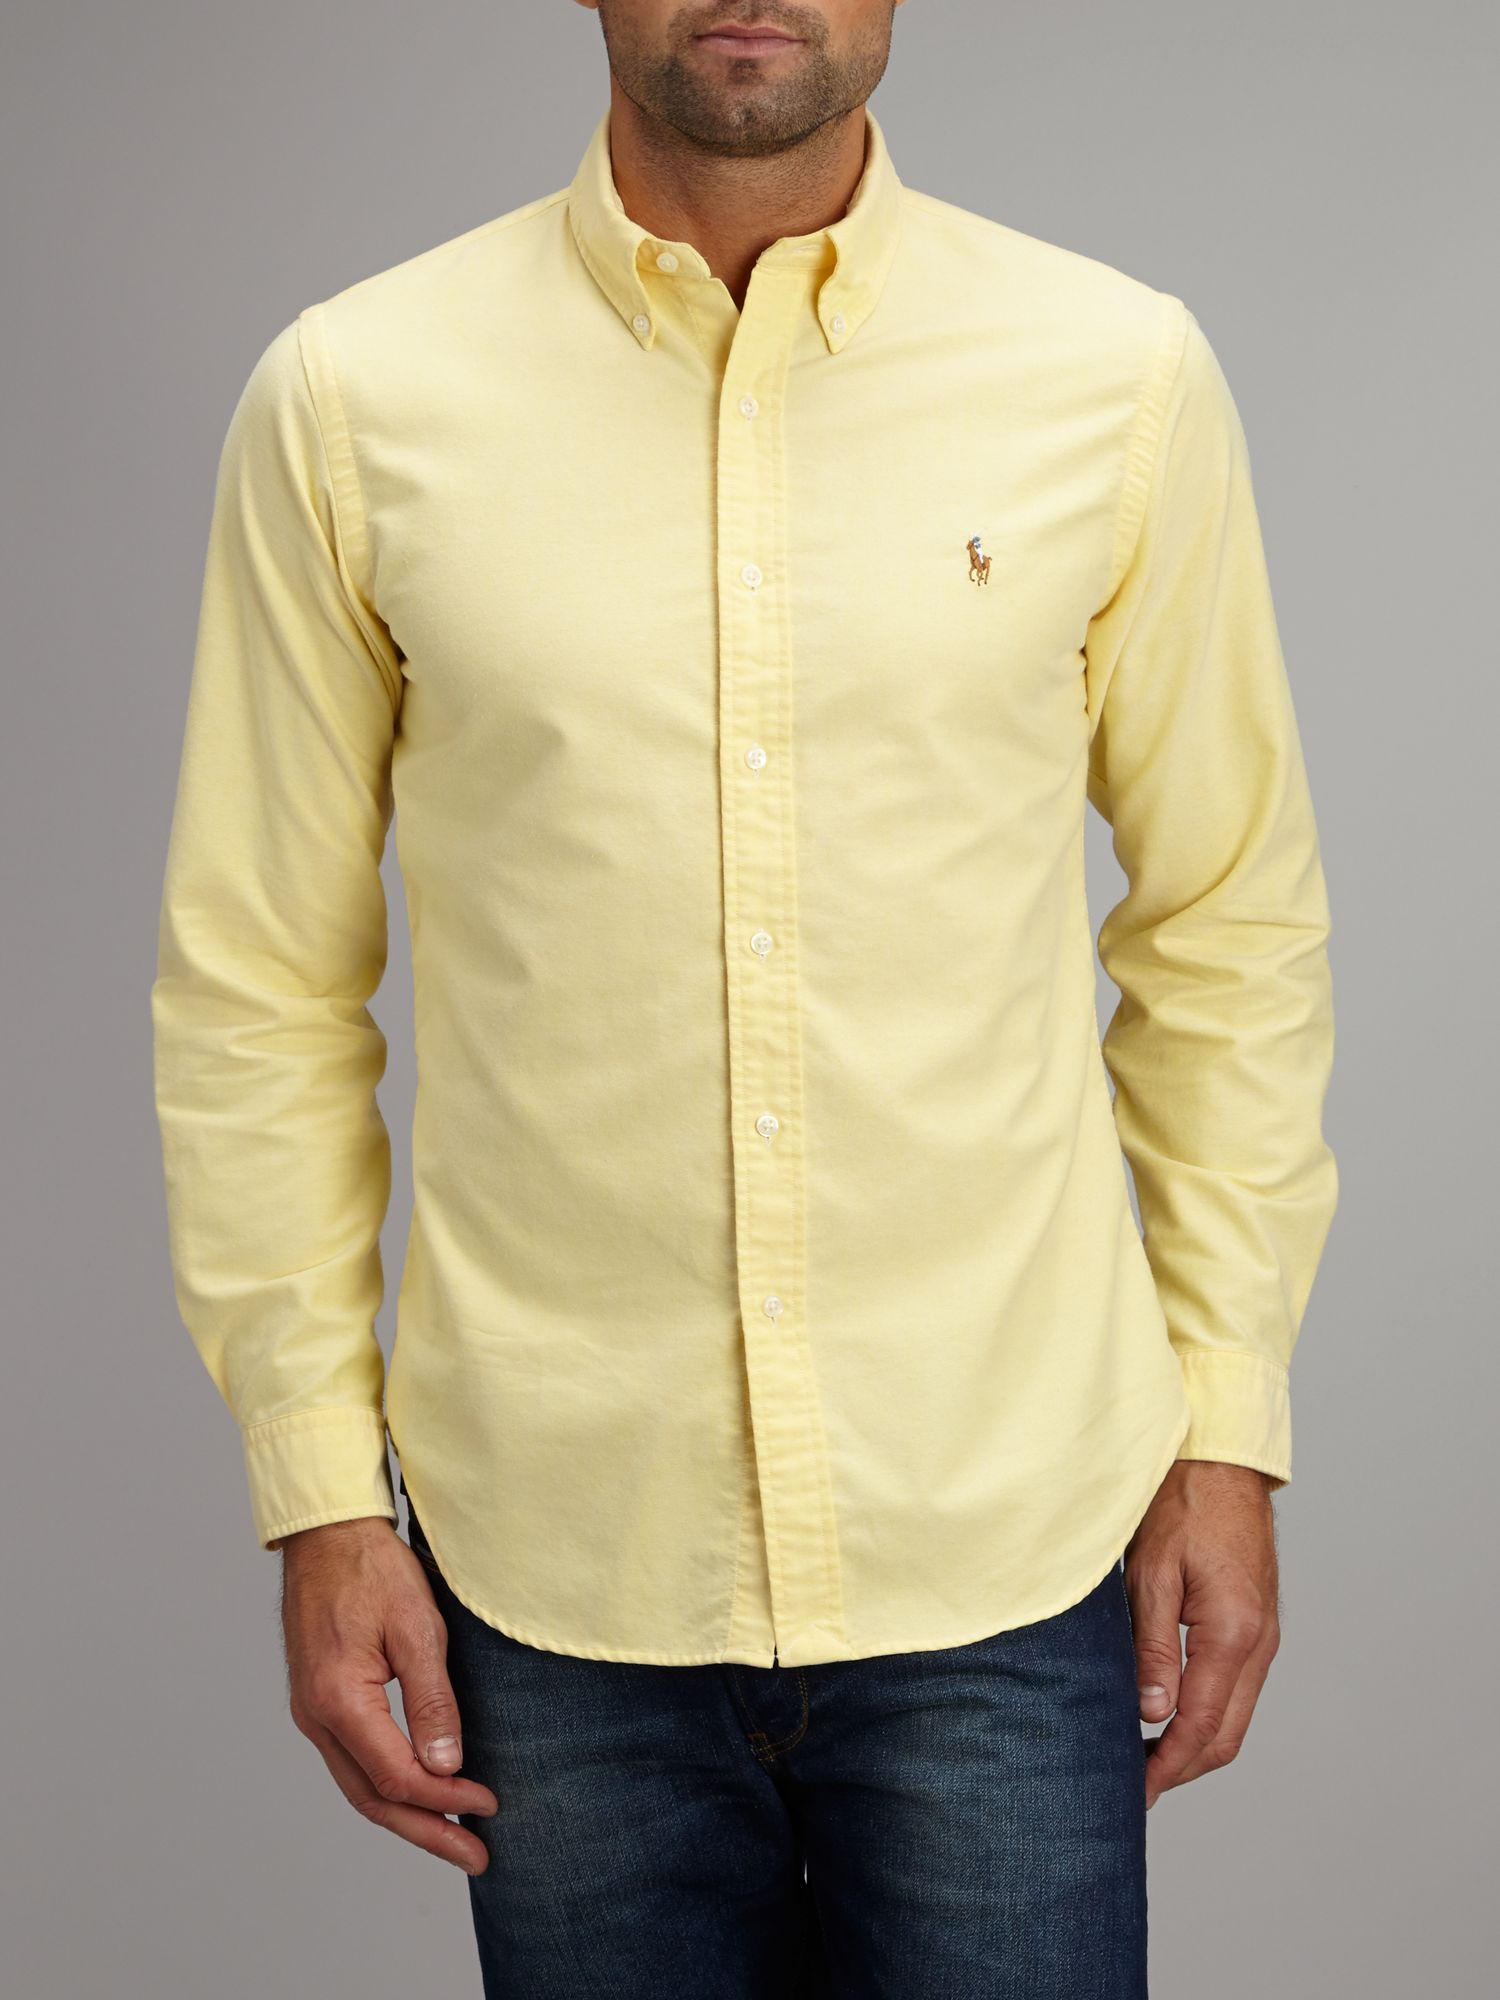 Light Yellow Long Sleeve Shirt Shirts Rock